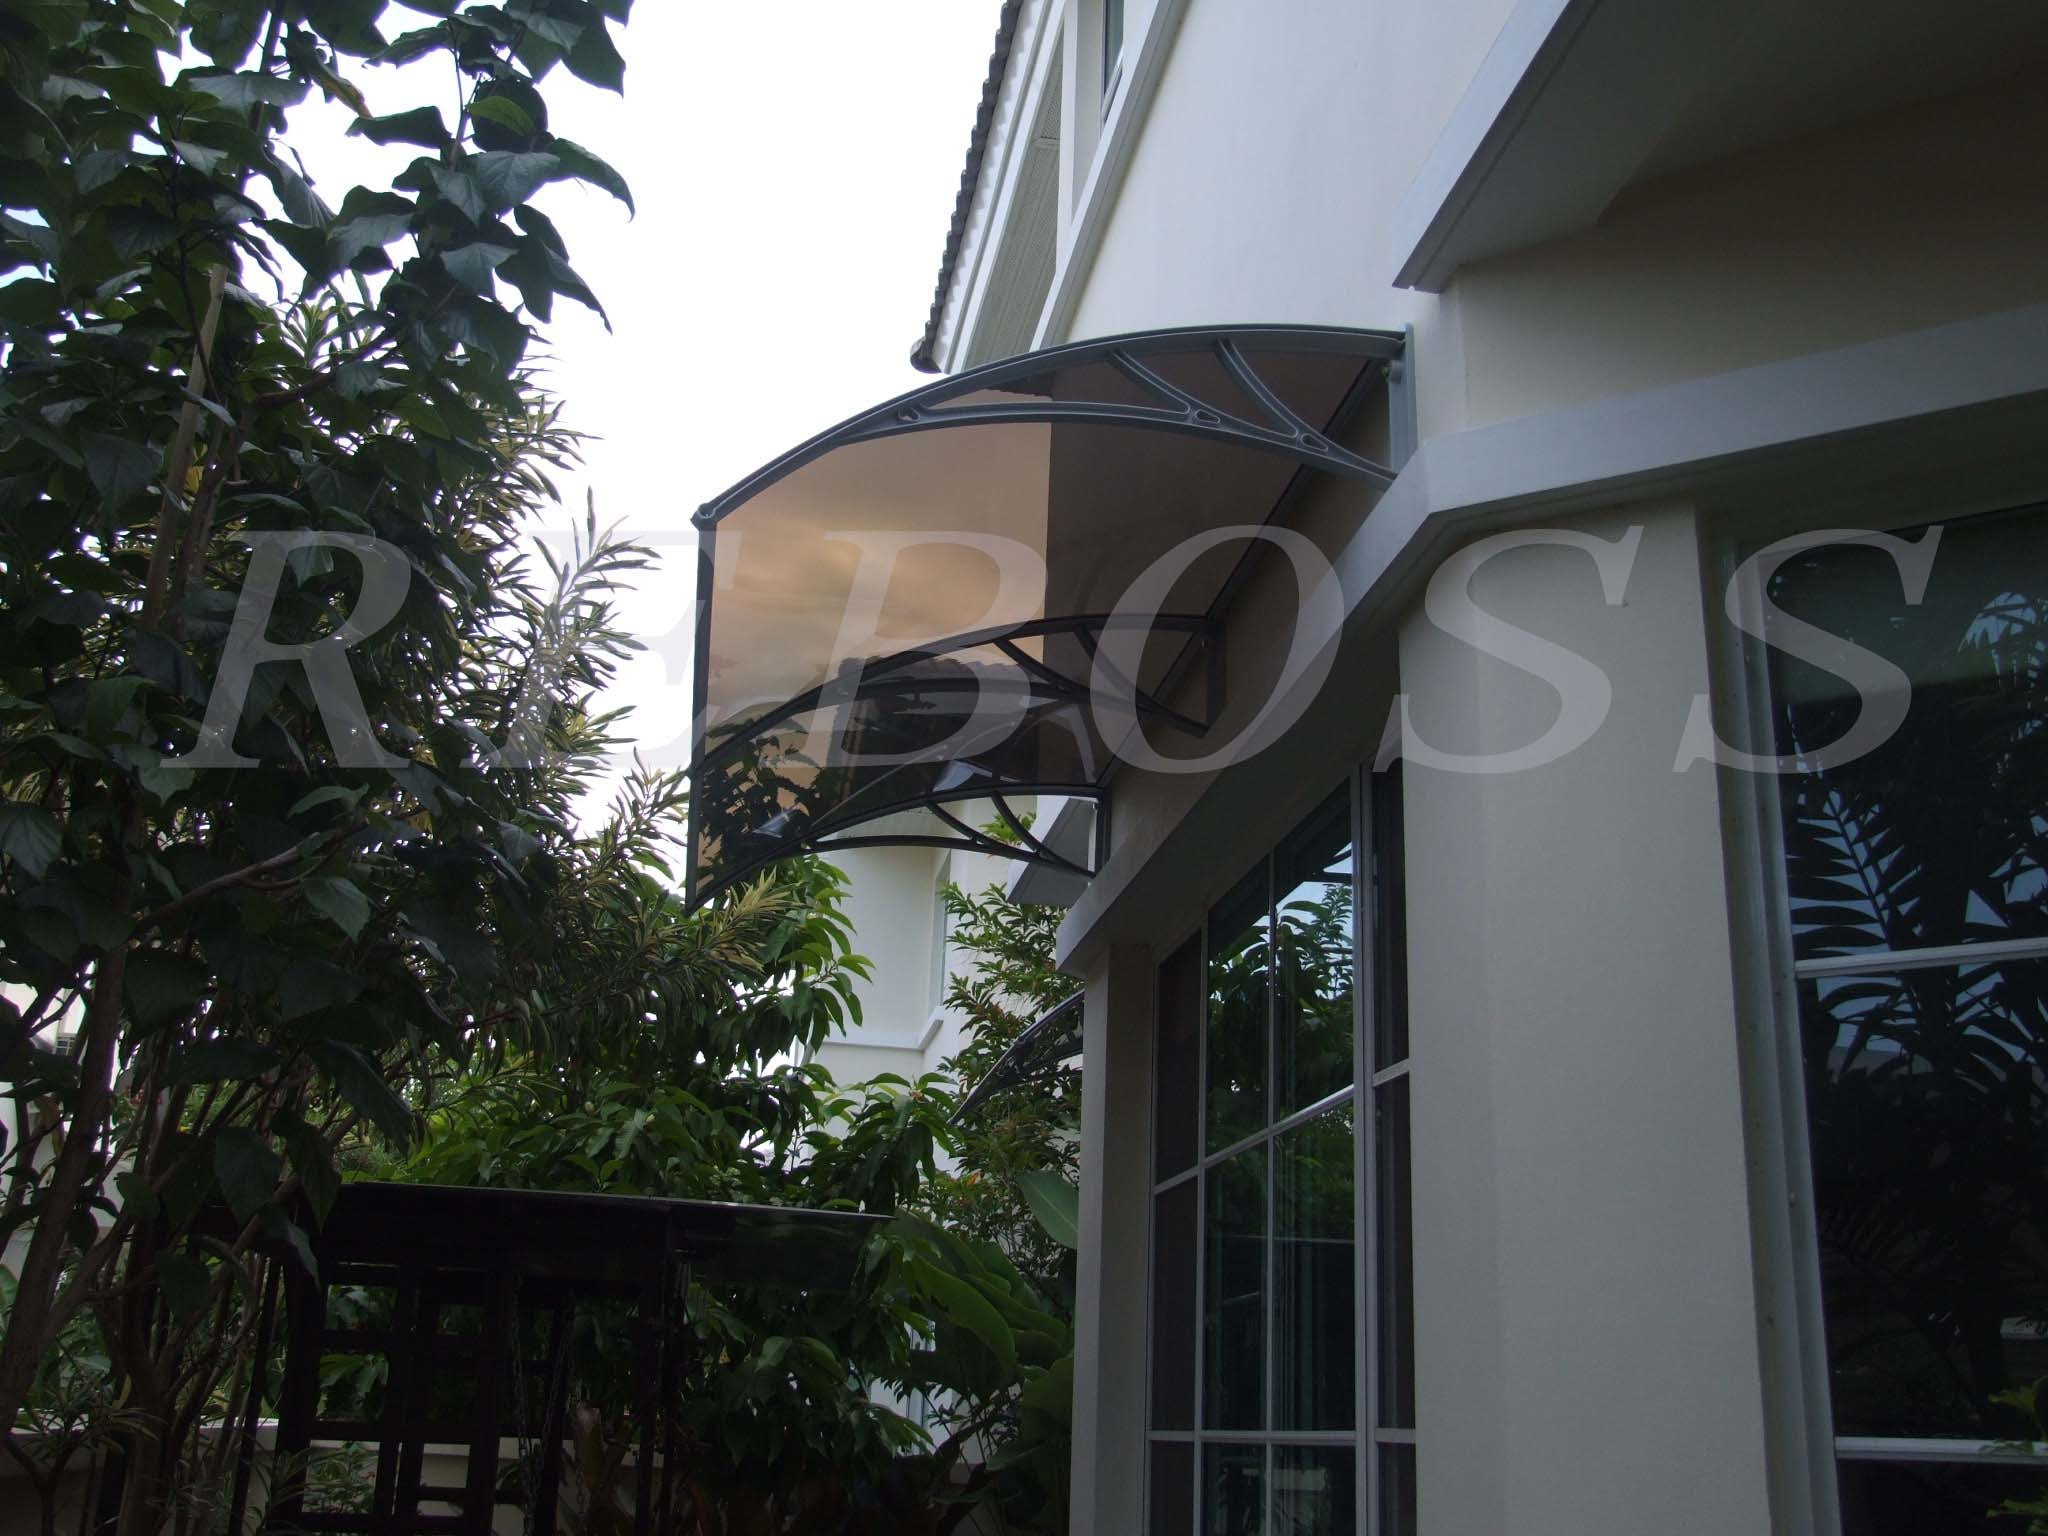 PC Awning/ Canopy / Tents/ Shelter for Windows and Doors